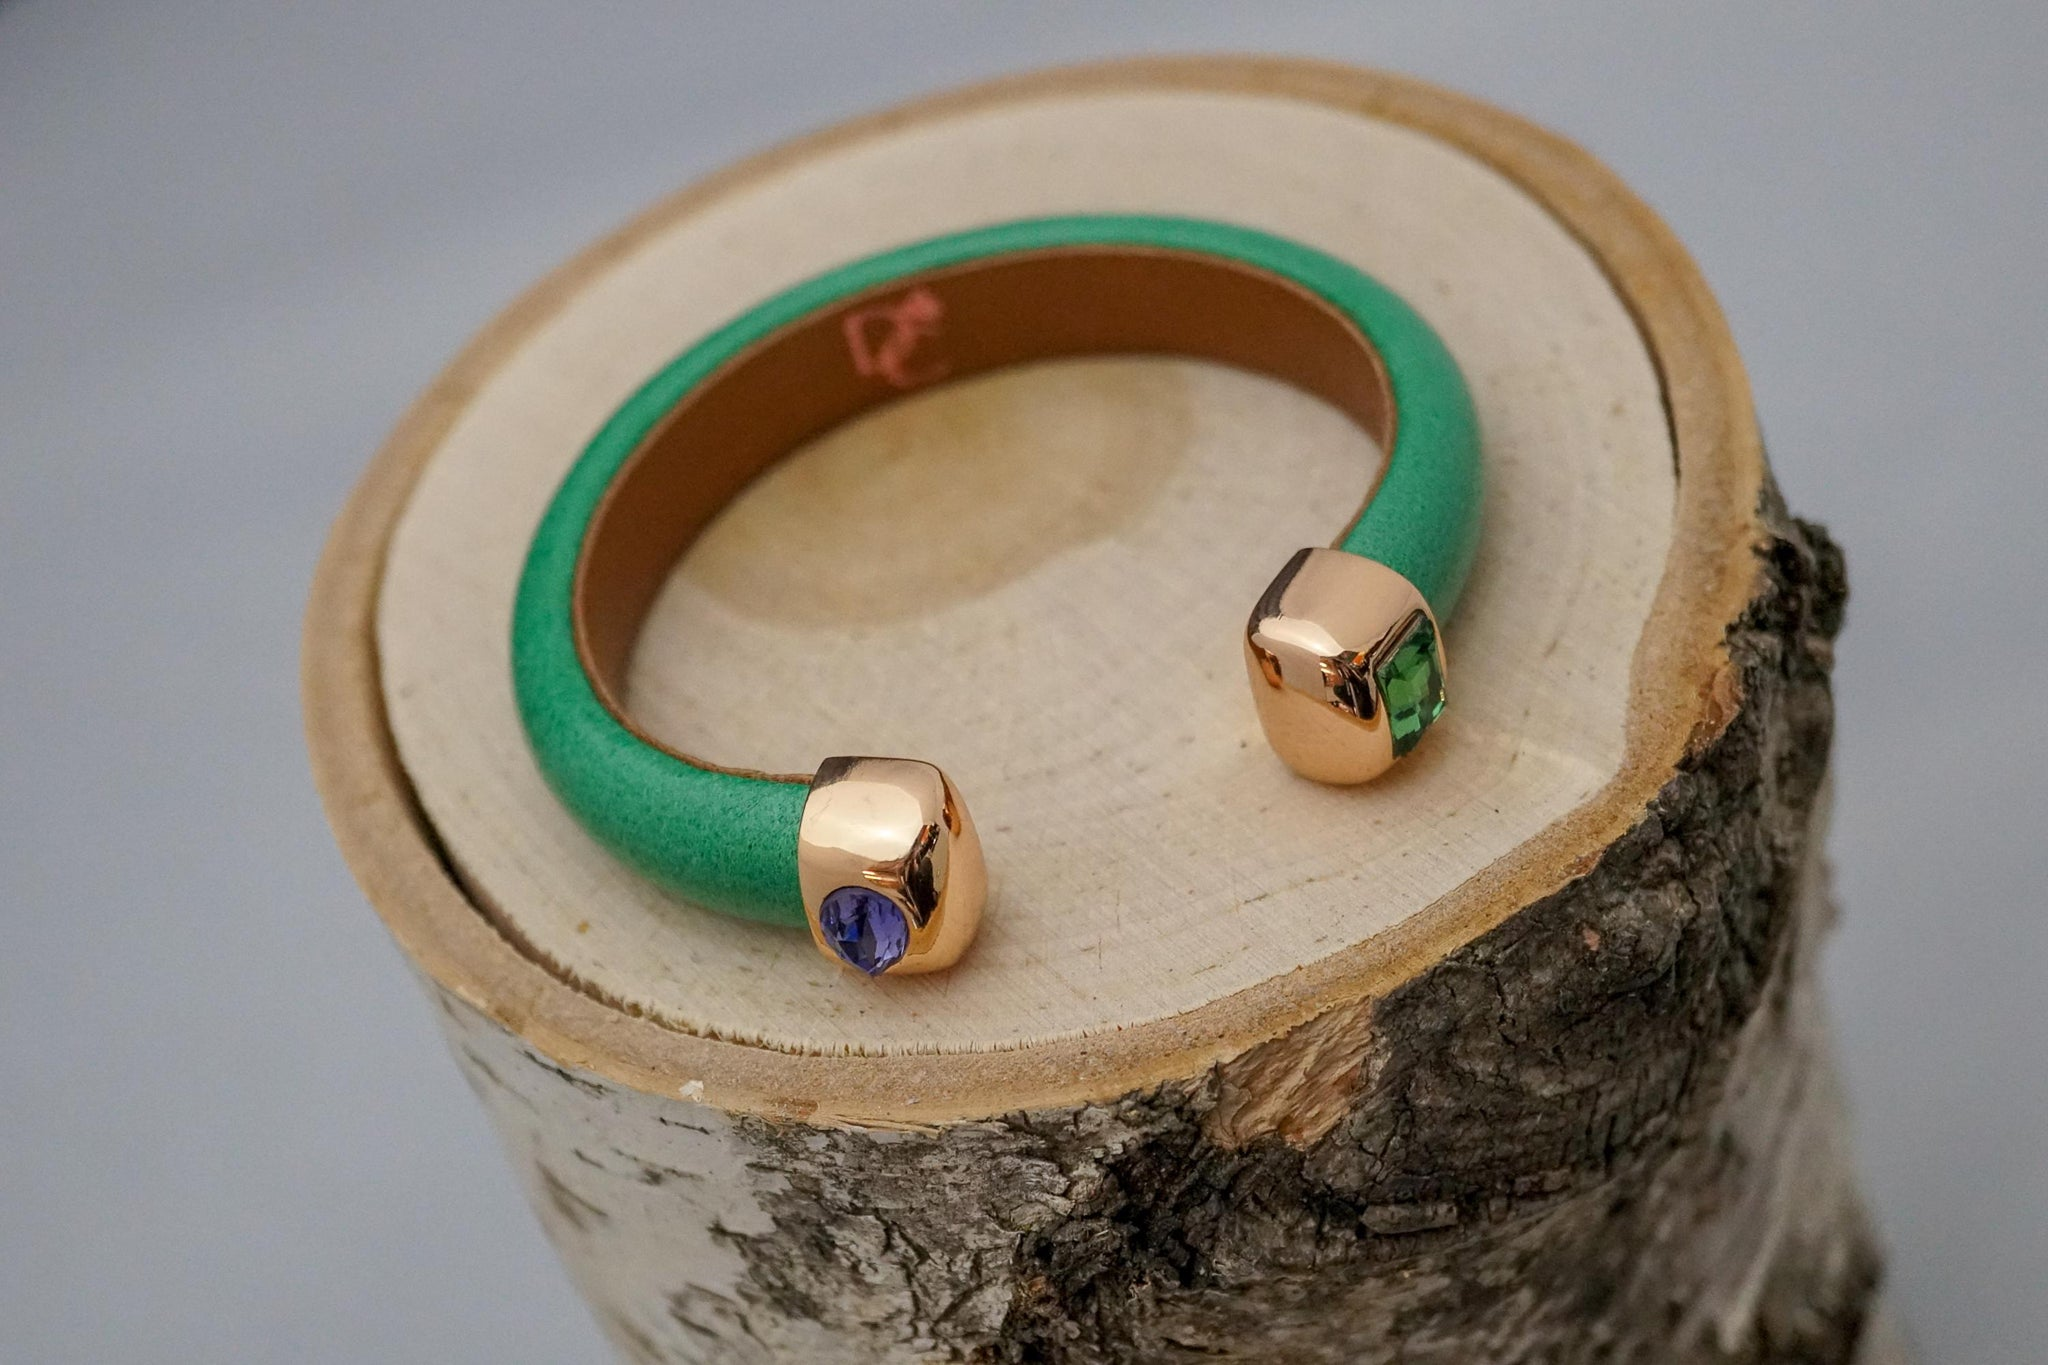 Single Cuff Bracelet with Stones-Green